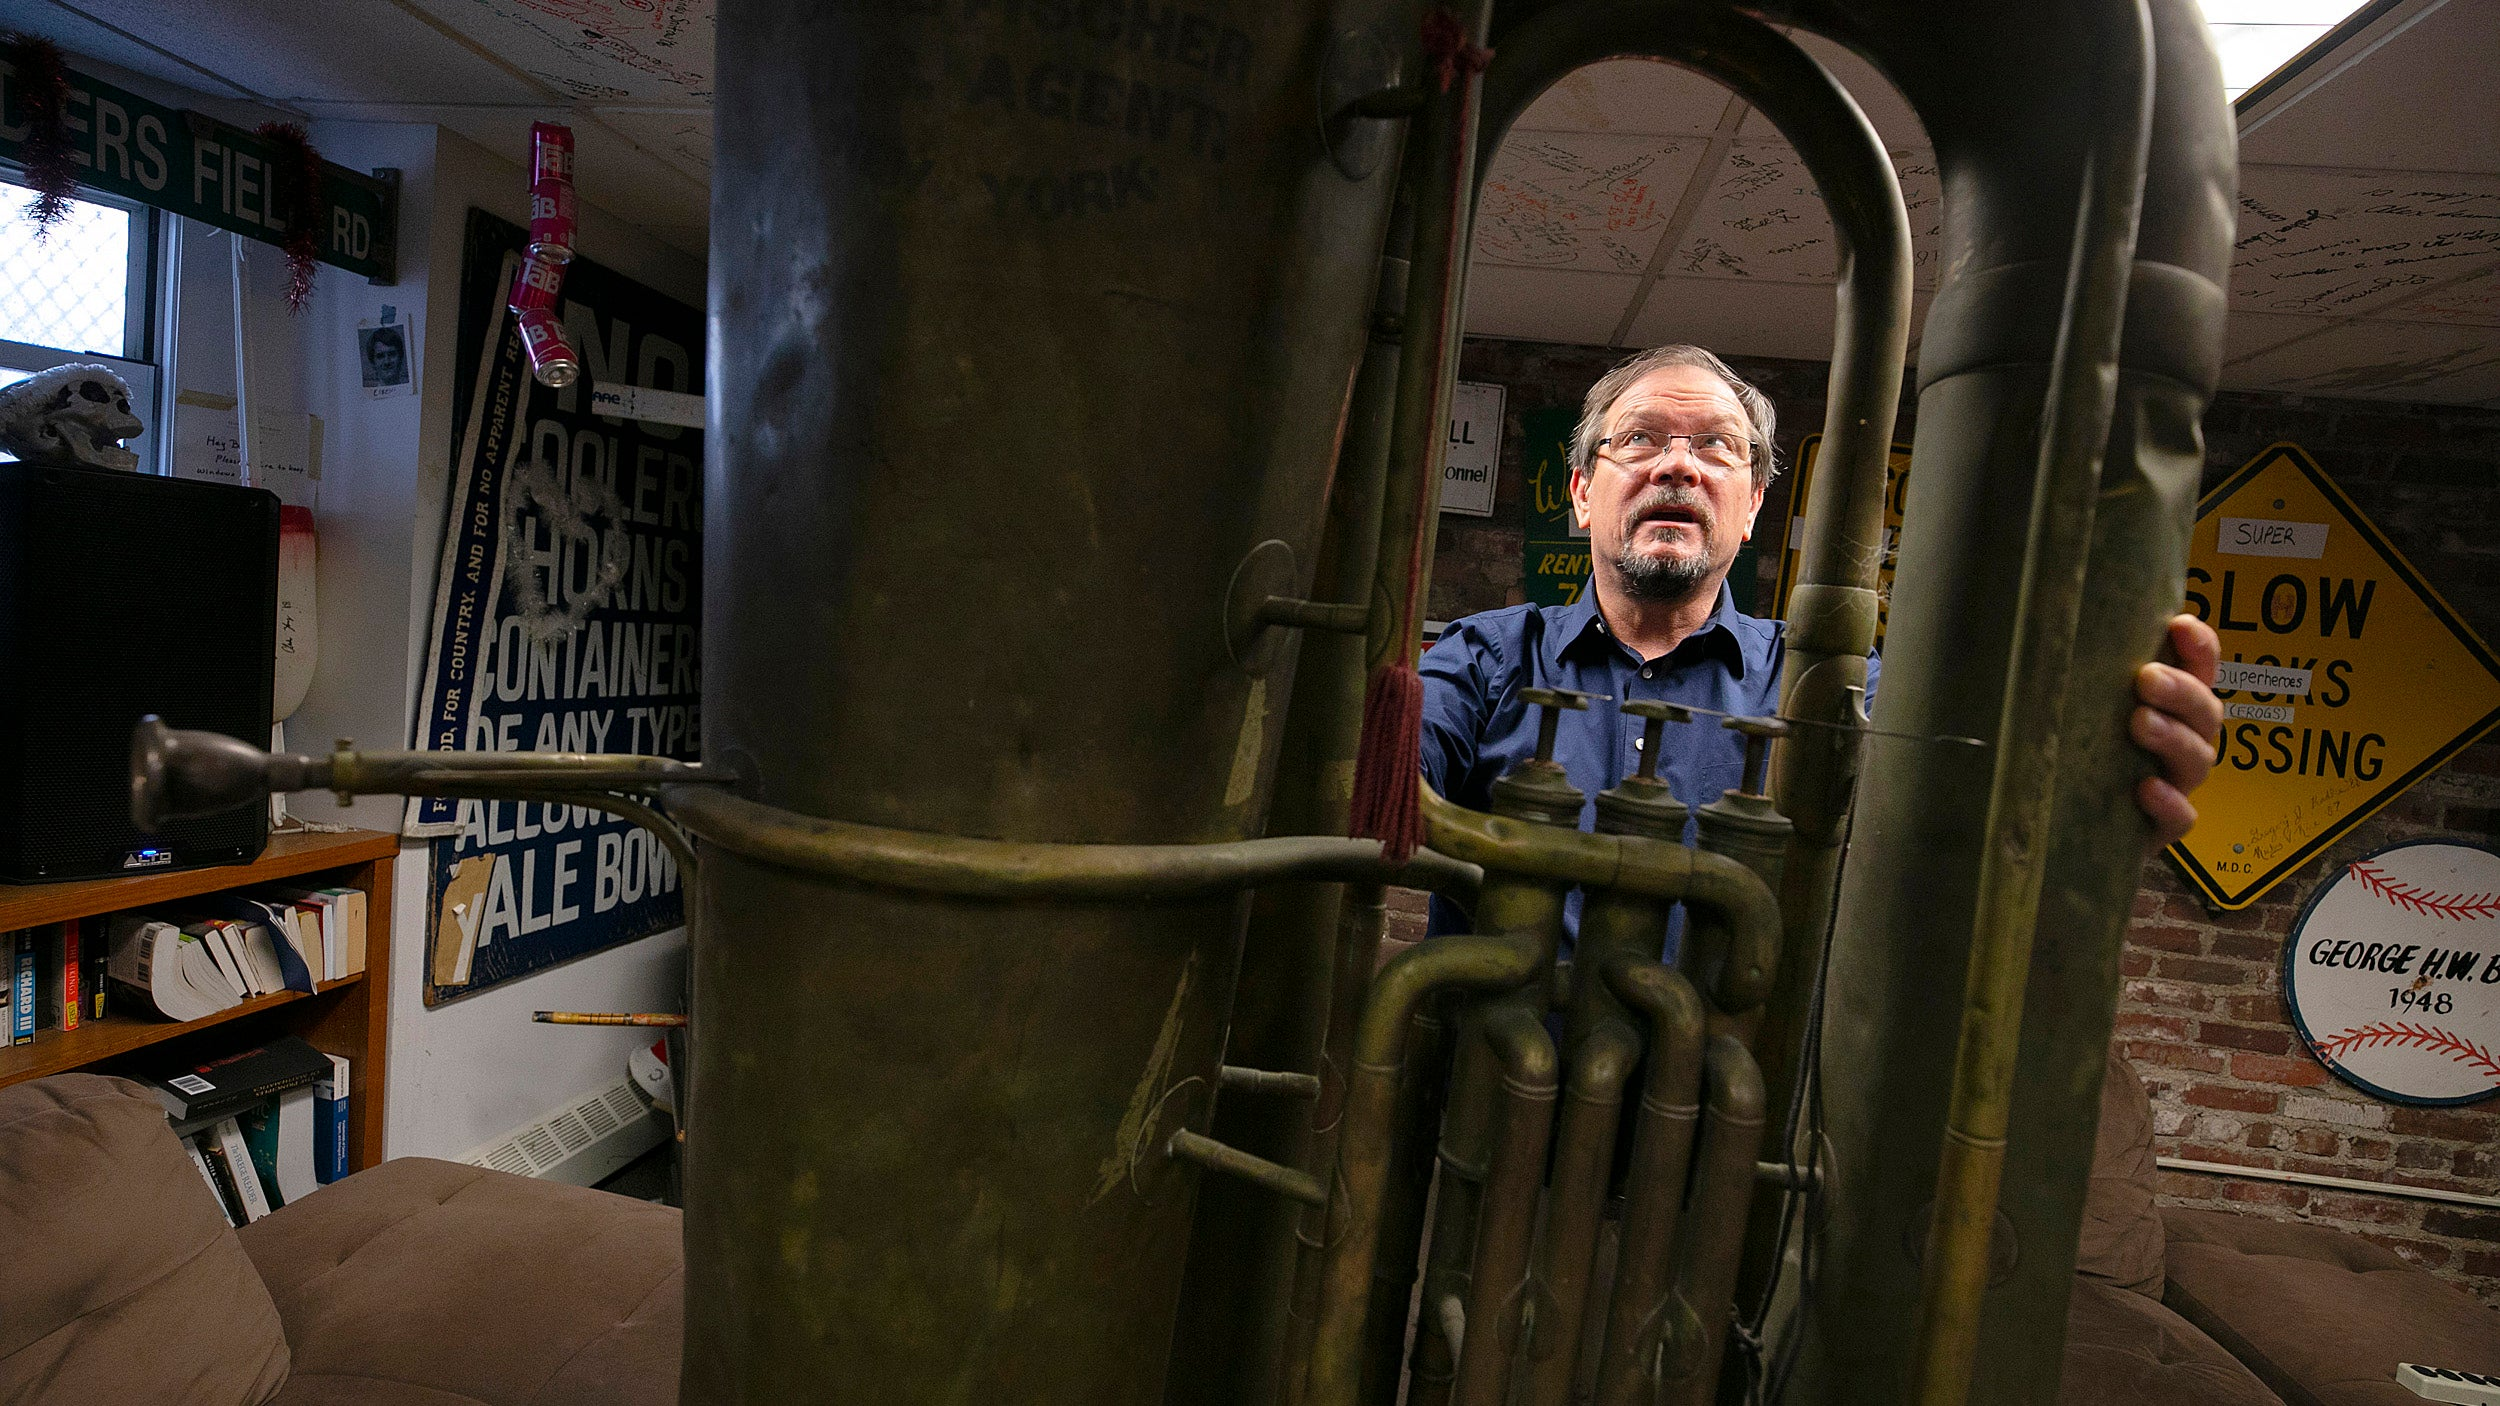 A man standing behind a giant tuba